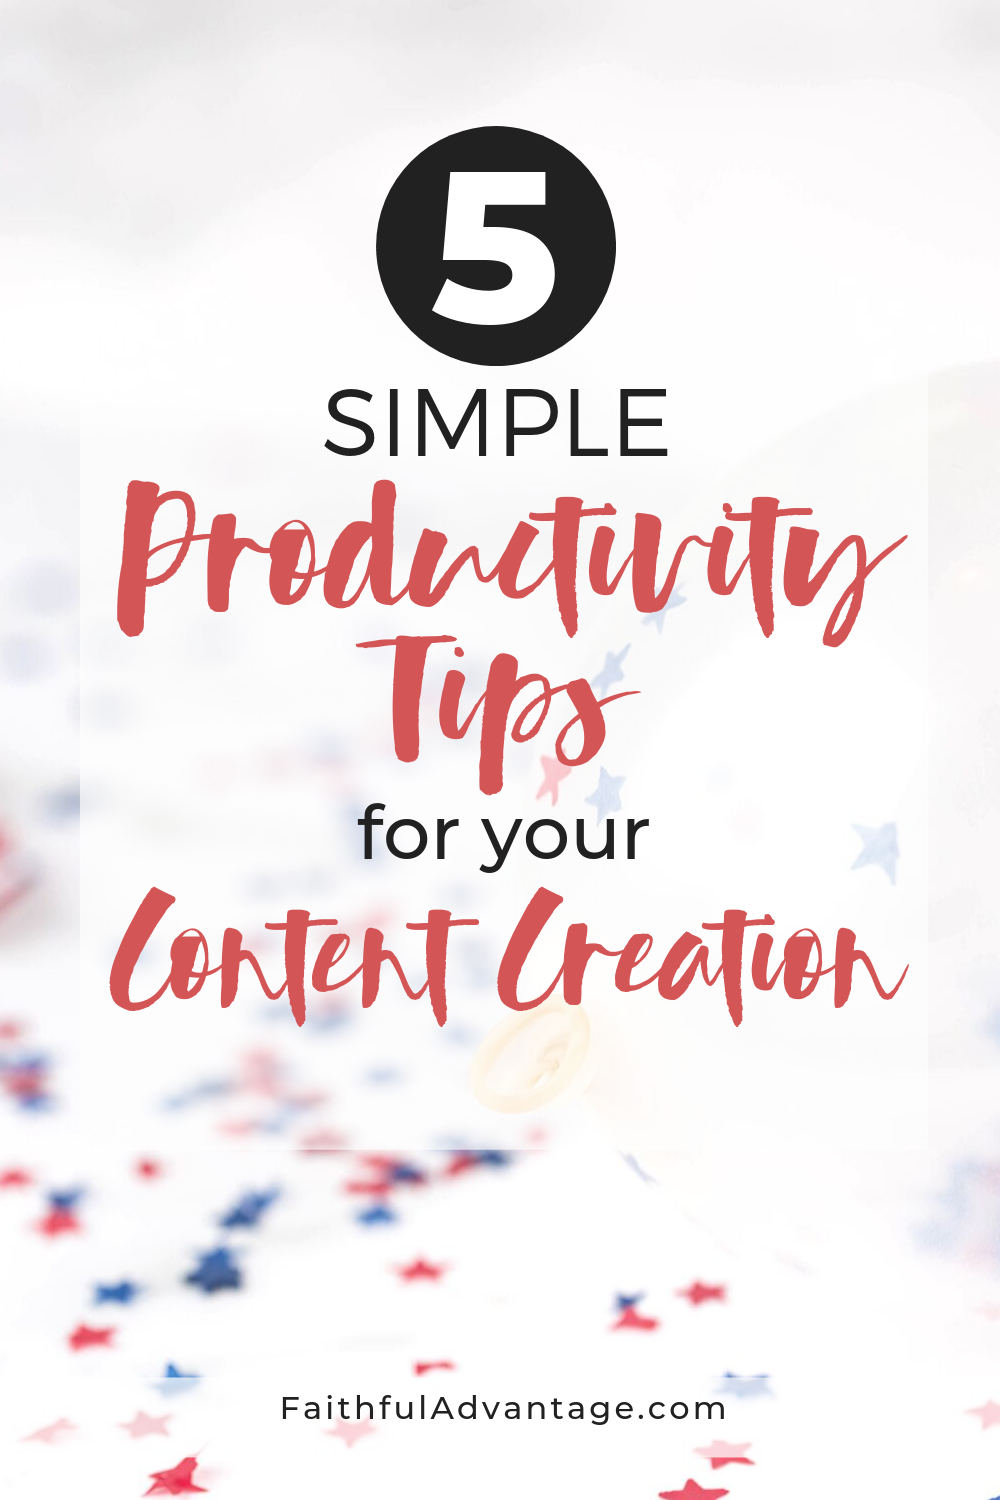 5 simple productivity-tips-for-content-creation_Faithful-Advantage